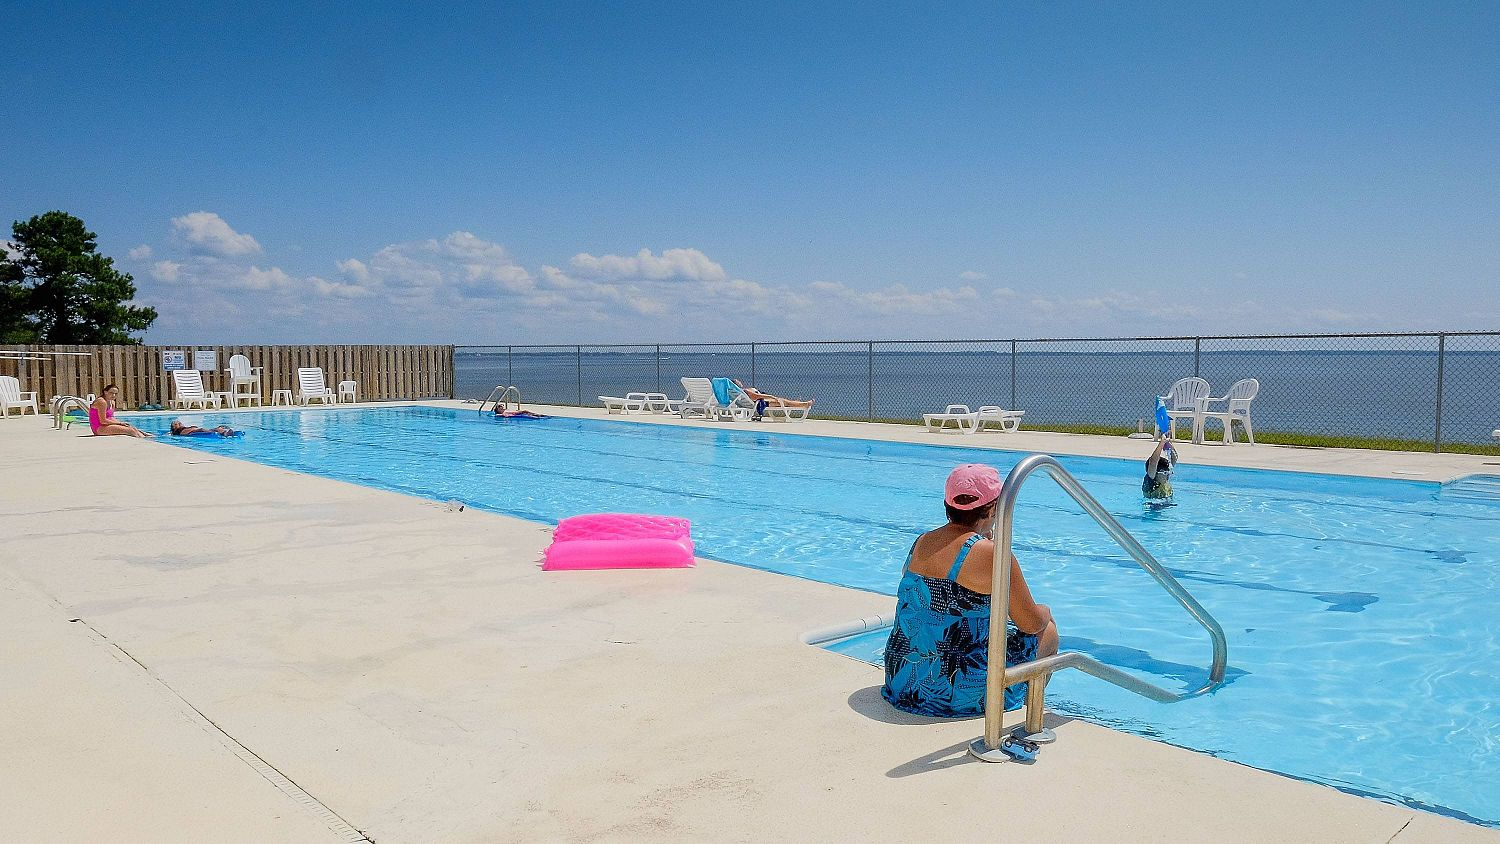 The swimming pool at the Links at Mulberry Hill with the Albemarle Sound view